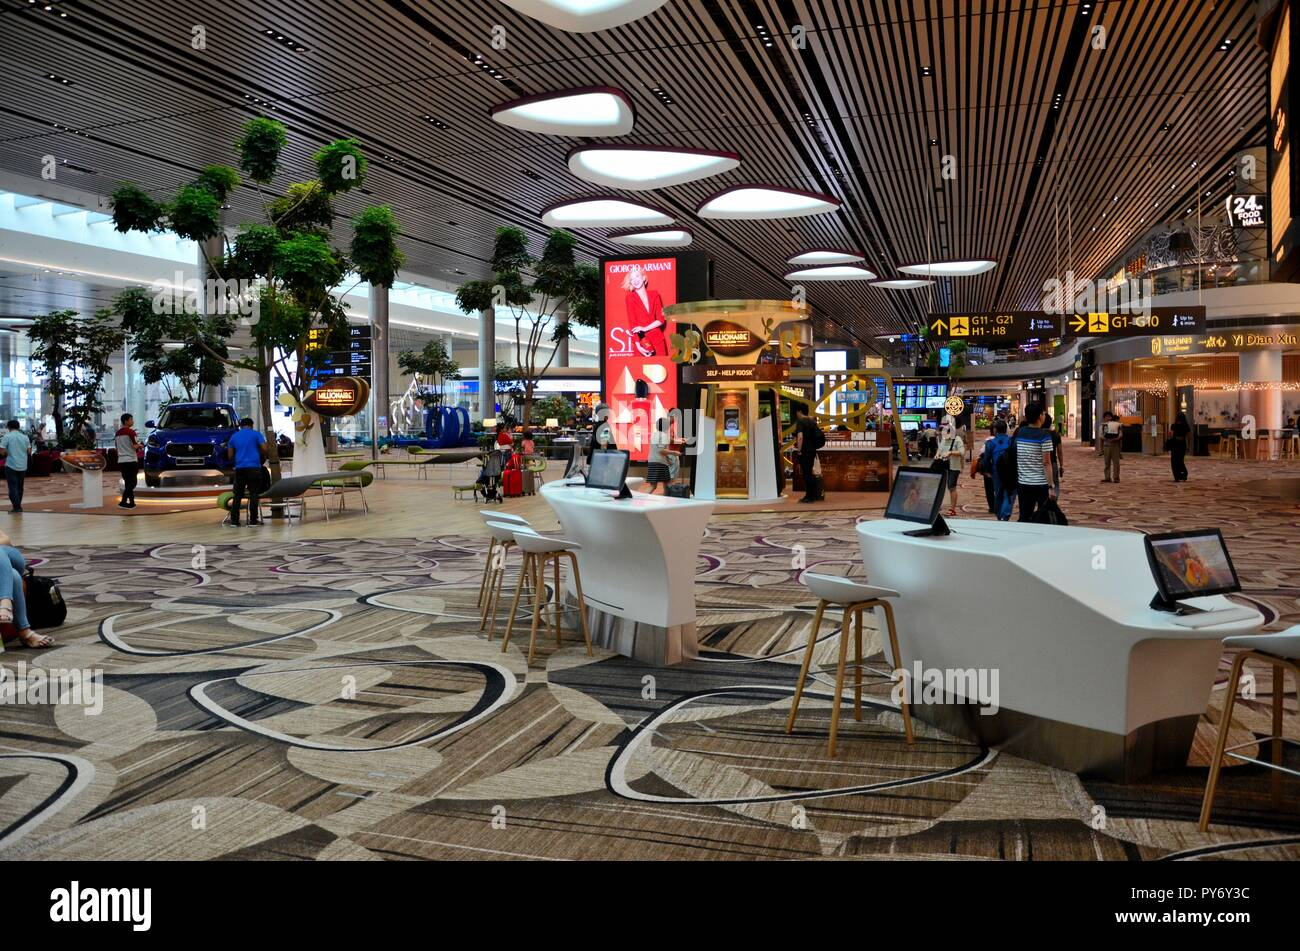 Travellers inside immigration area near departure gates at Changi T4 Singapore - Stock Image